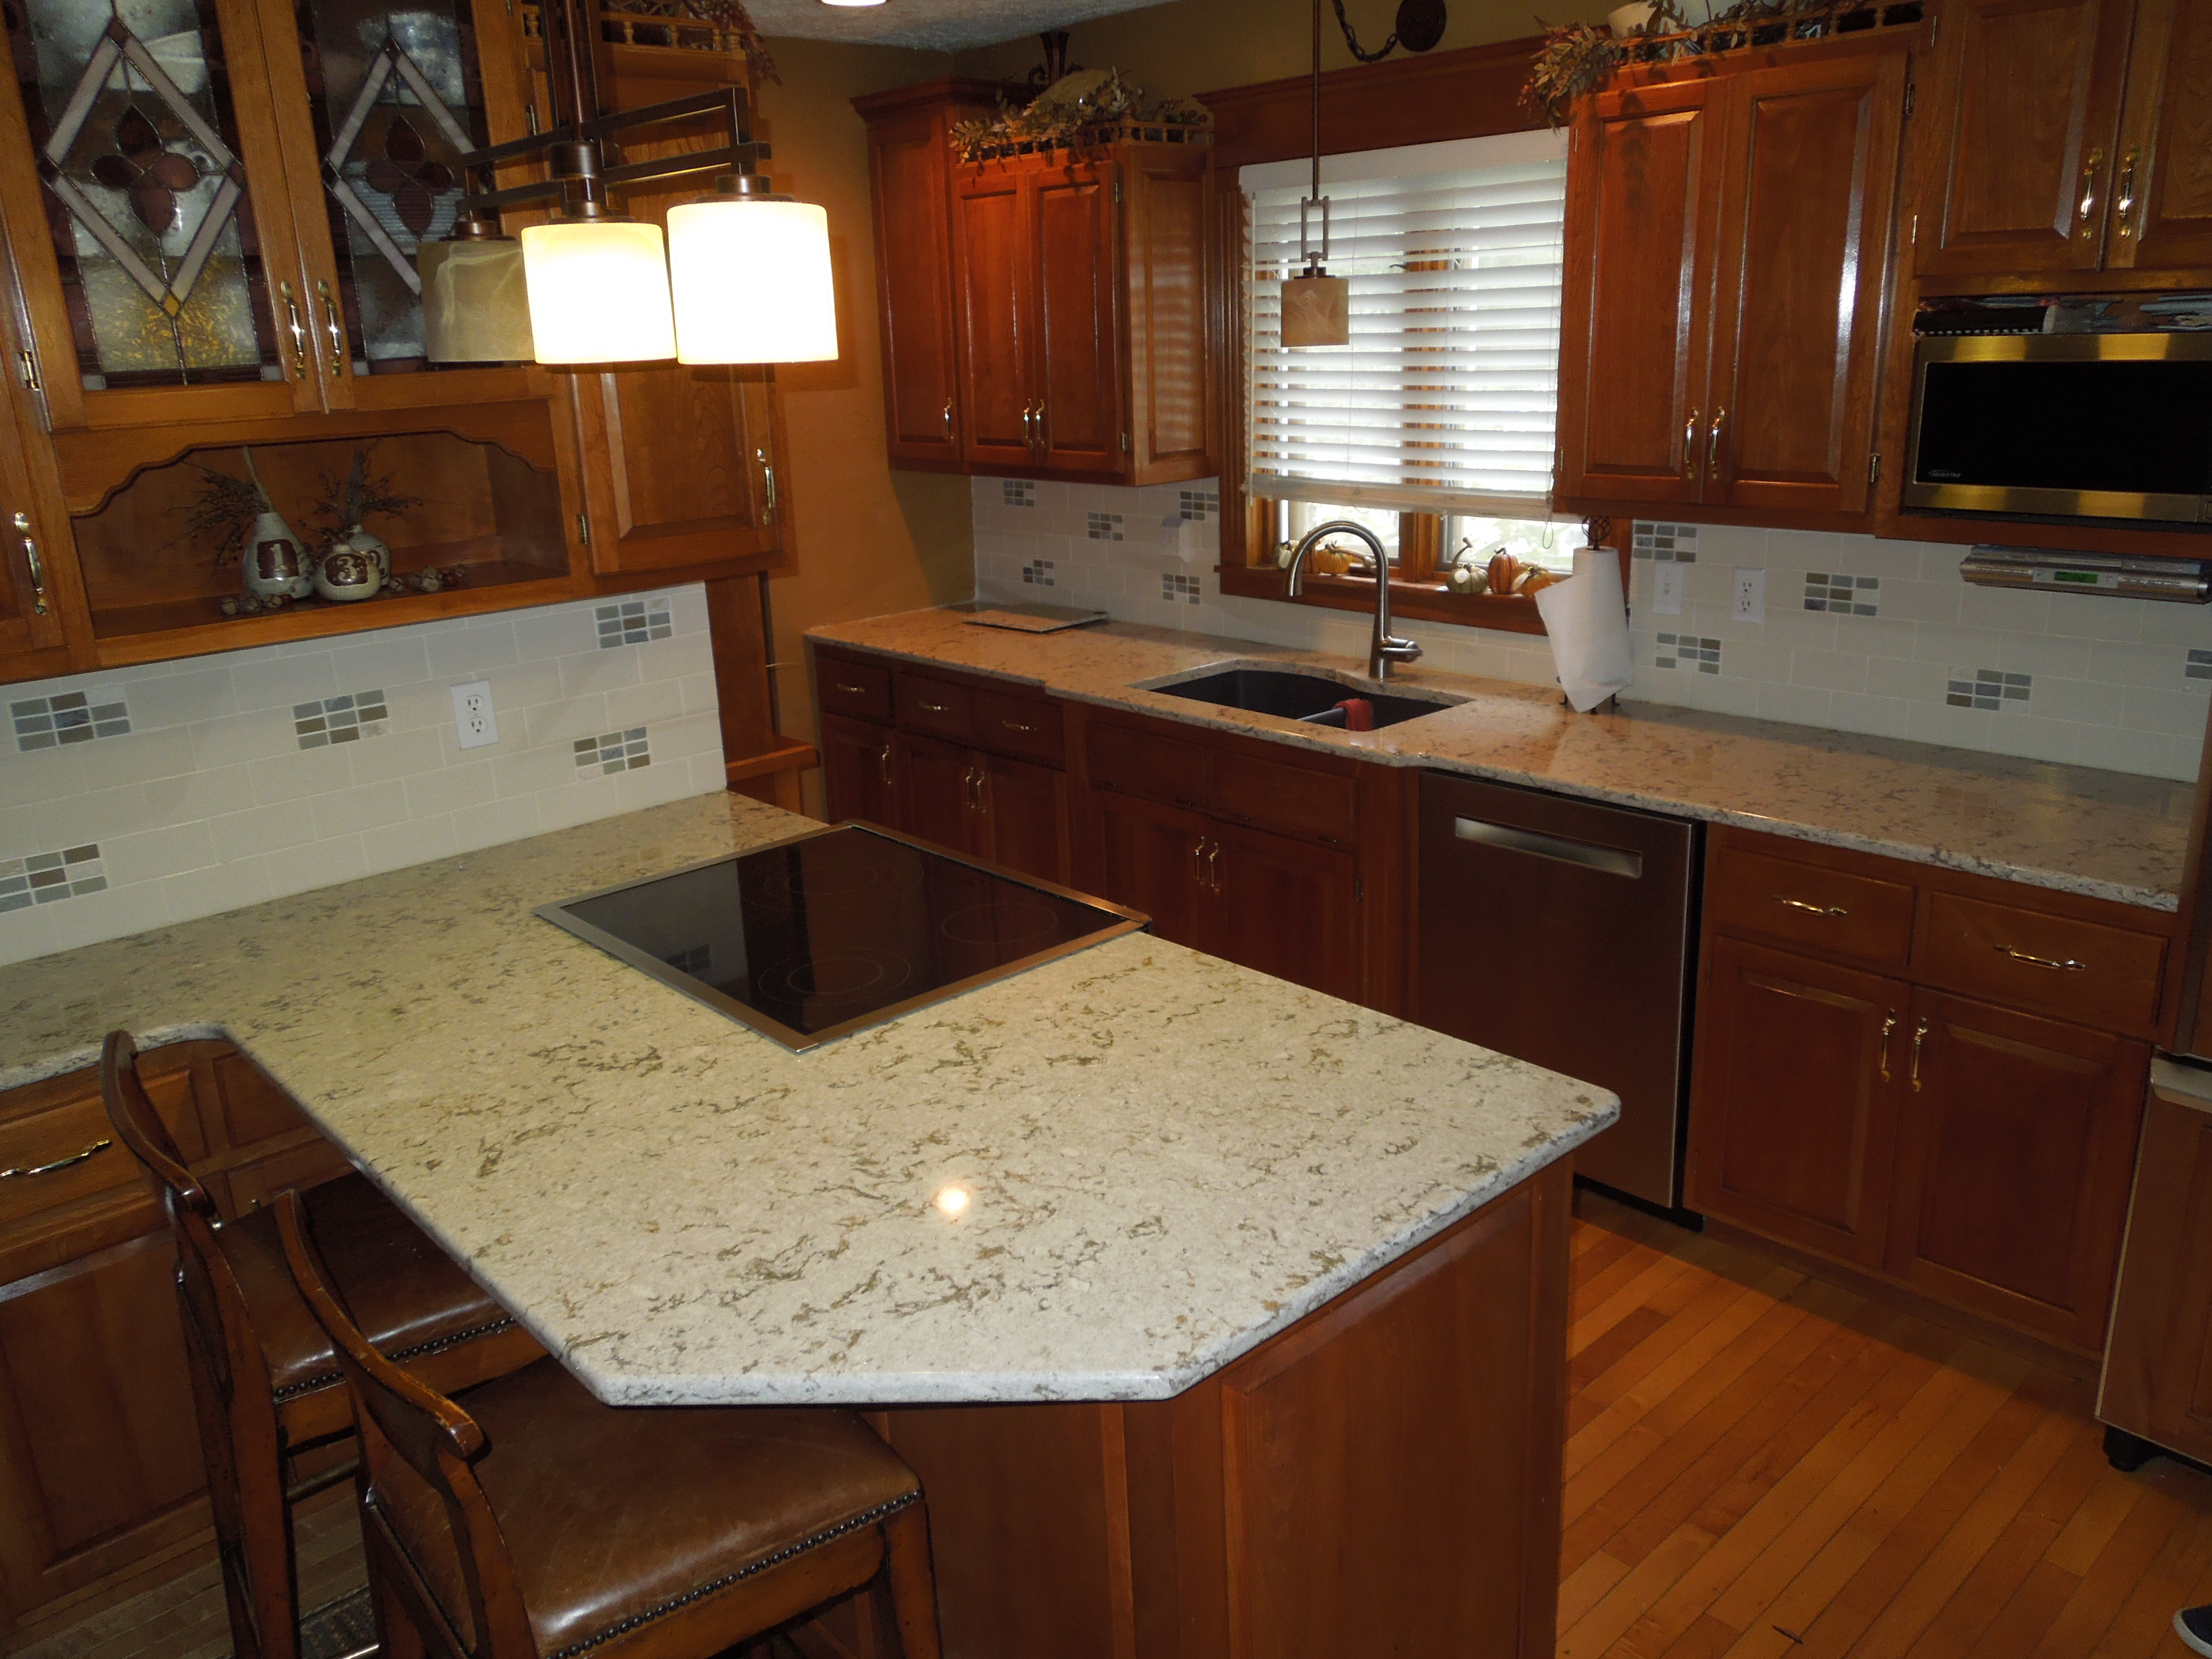 New River Cabinets Typhoon Bordeaux Granite Traditional Kitchen Countertops For Less New